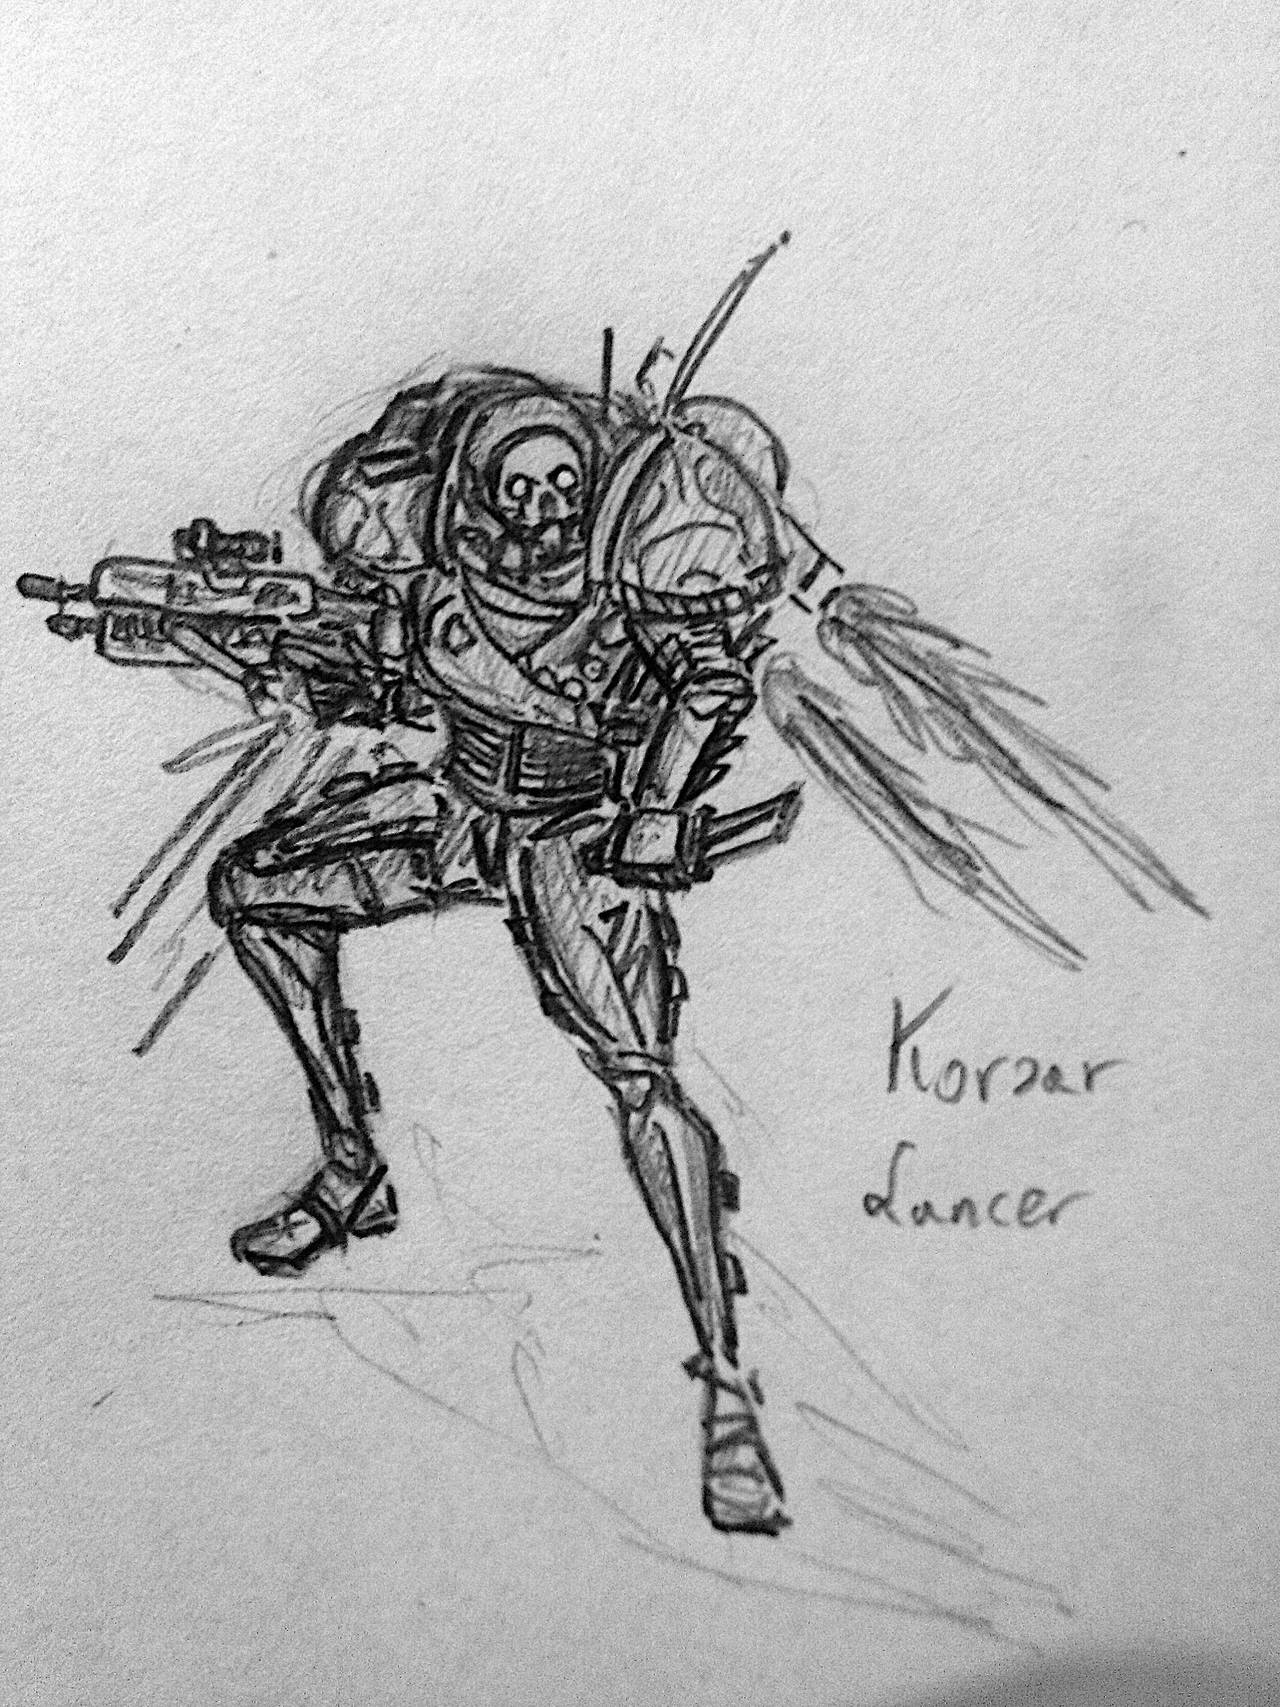 korsar_lancer_2_0_by_huginthecrowda_dcxh